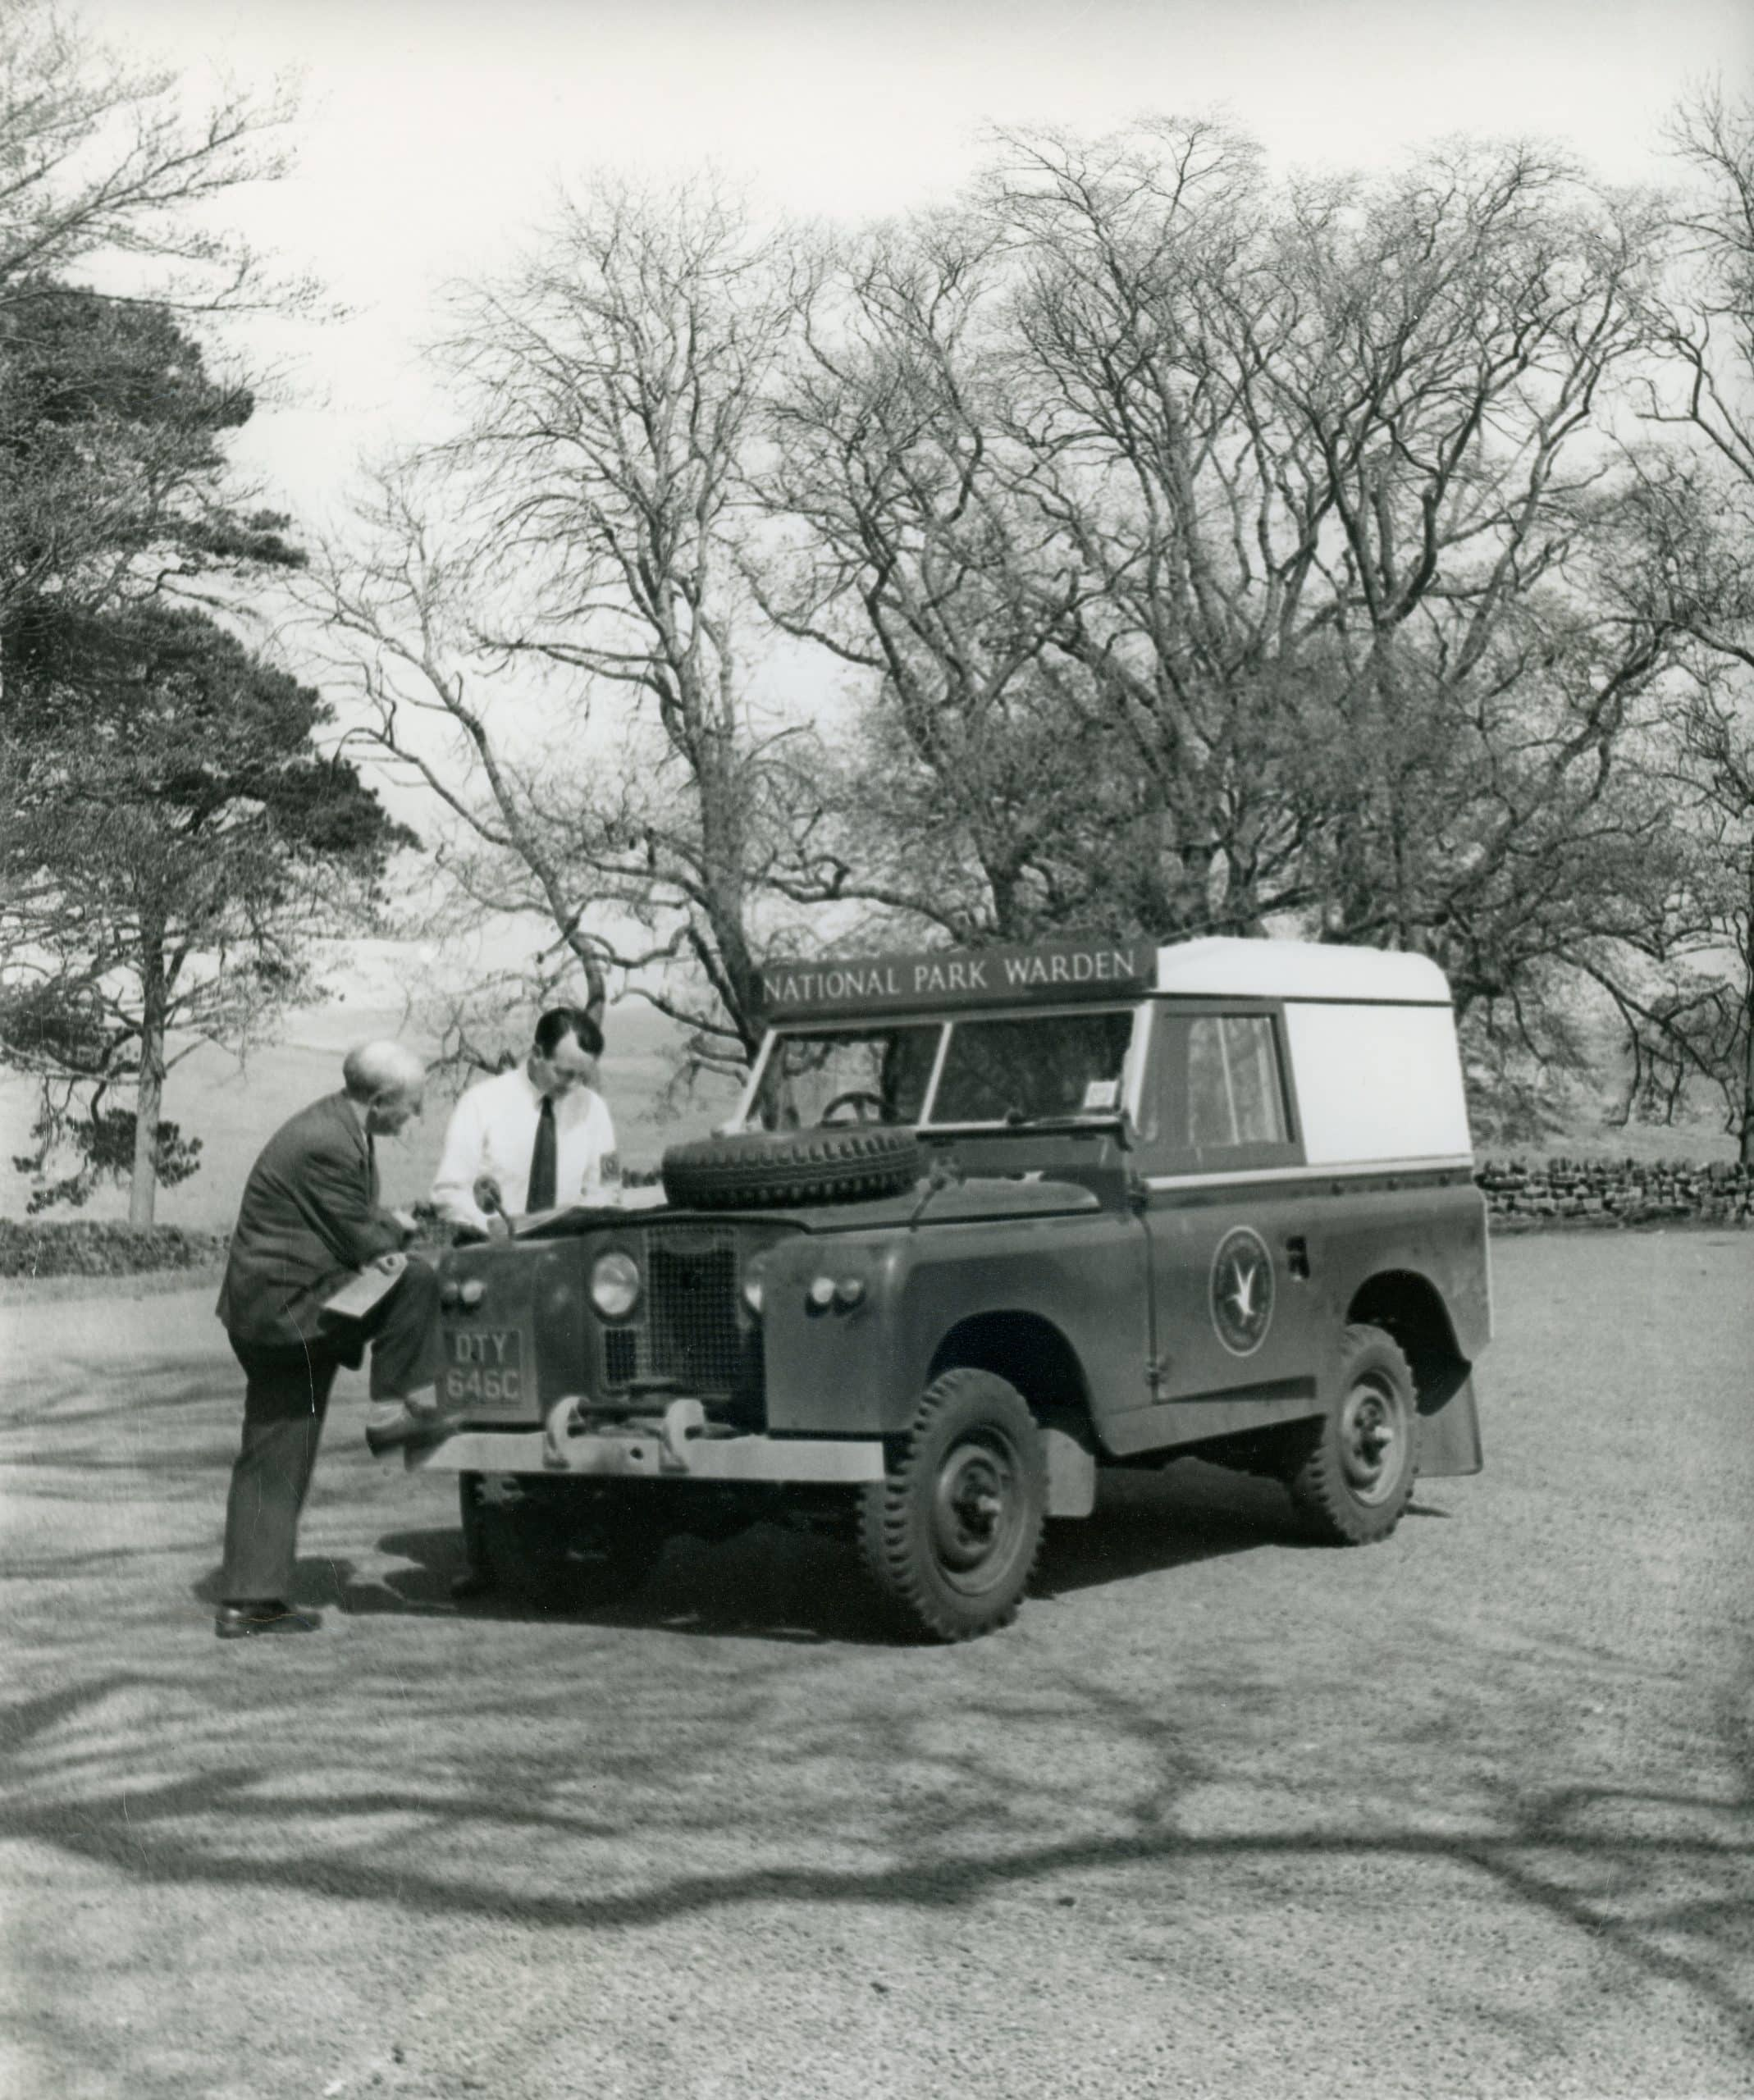 A black and white photograph of a ational Park Warden Jeep with two Rangers stood beside it